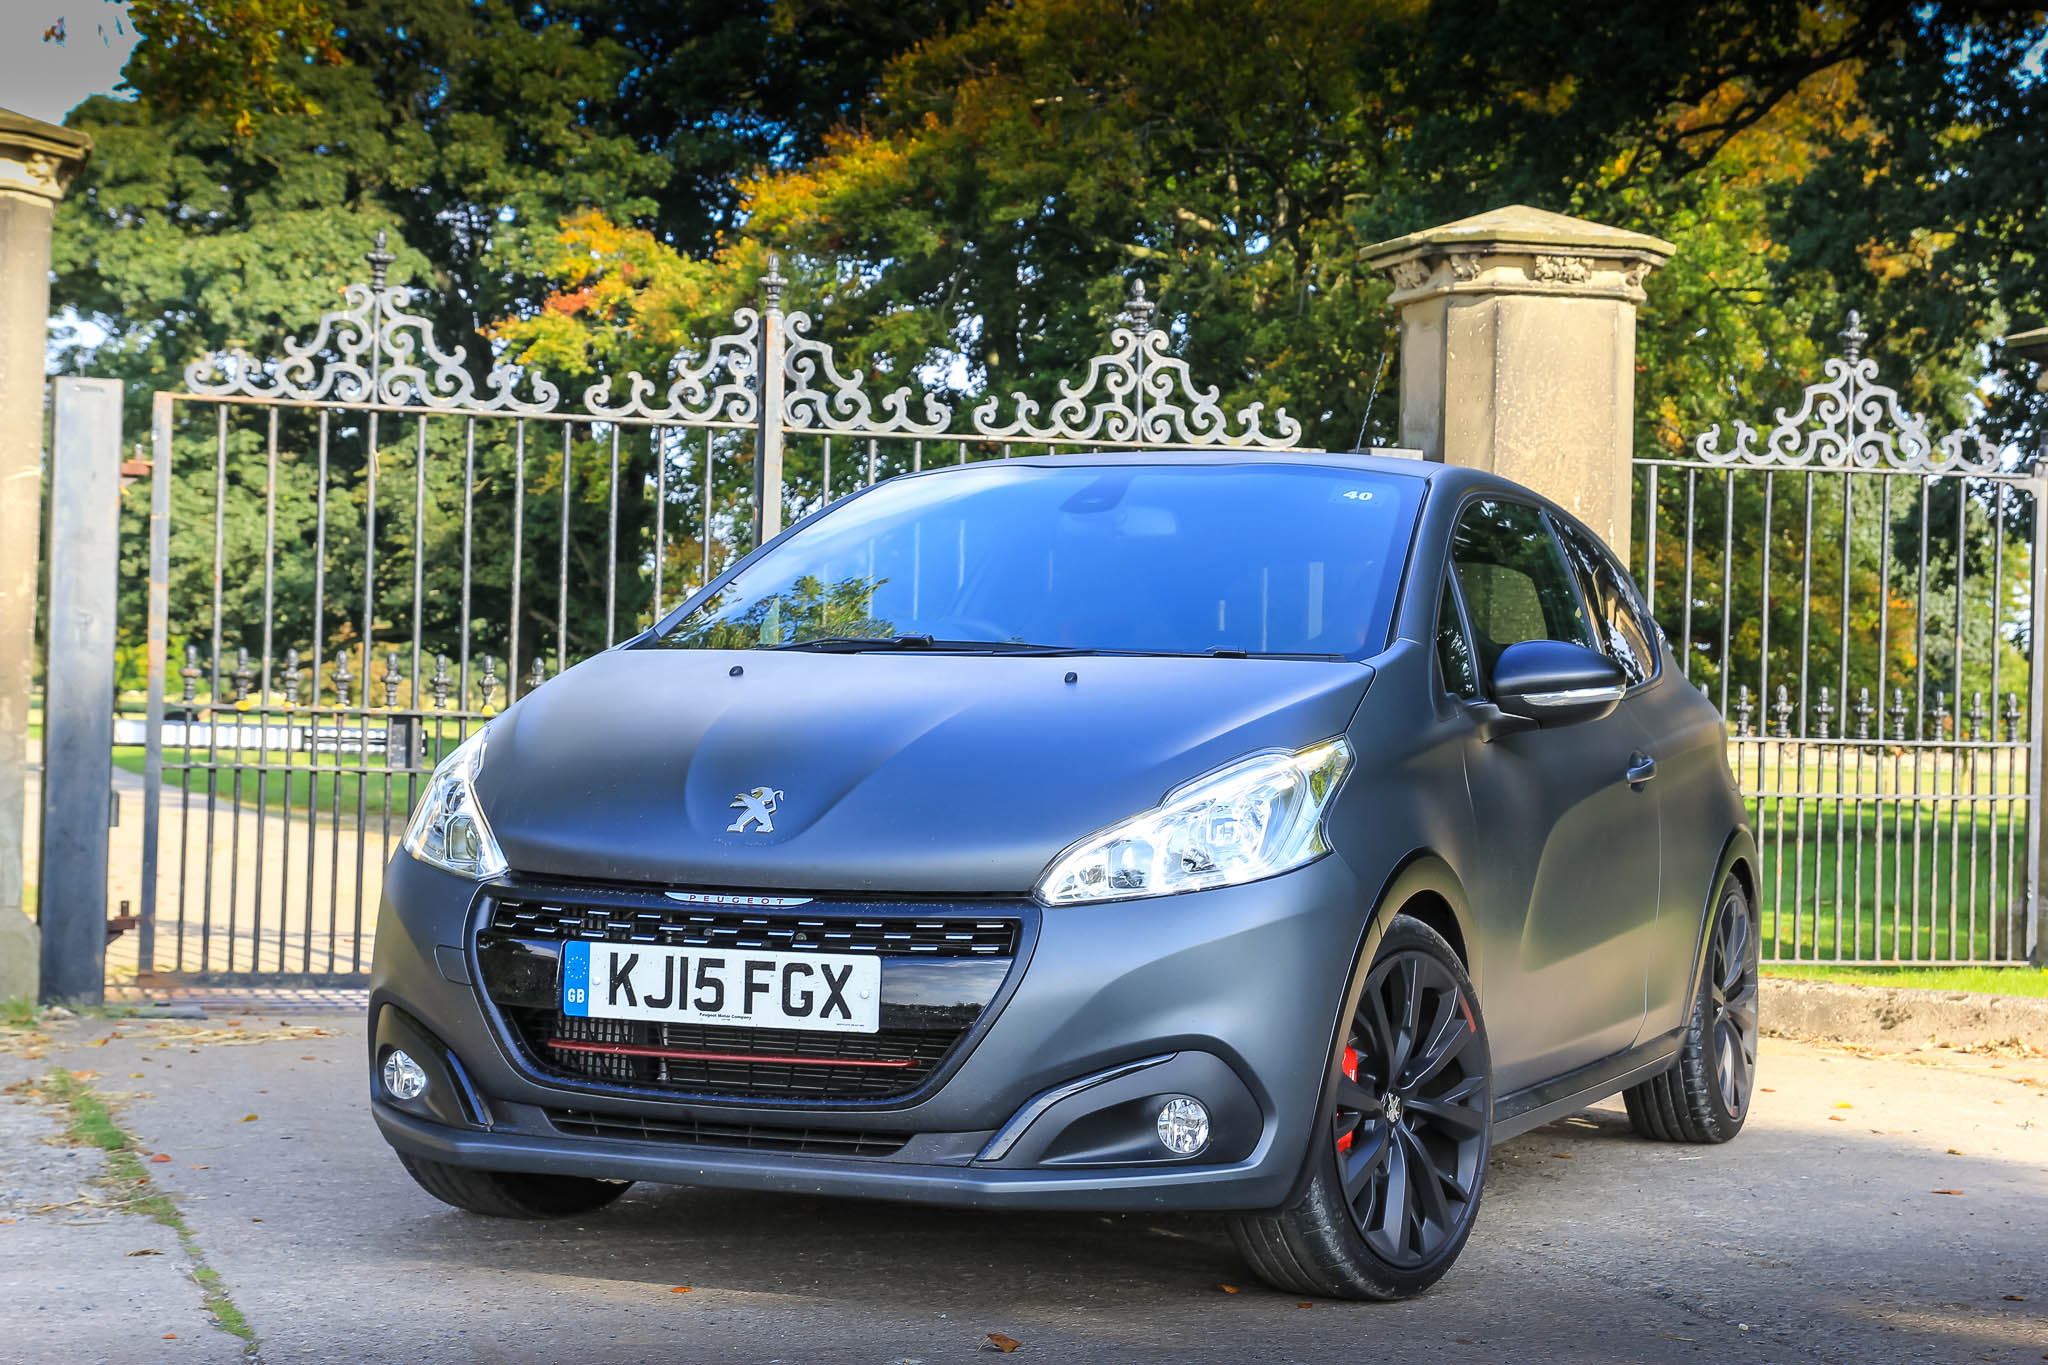 Luxury Car Pictures Wallpaper Peugeot 208 Gti By Peugeot Sport Gallery